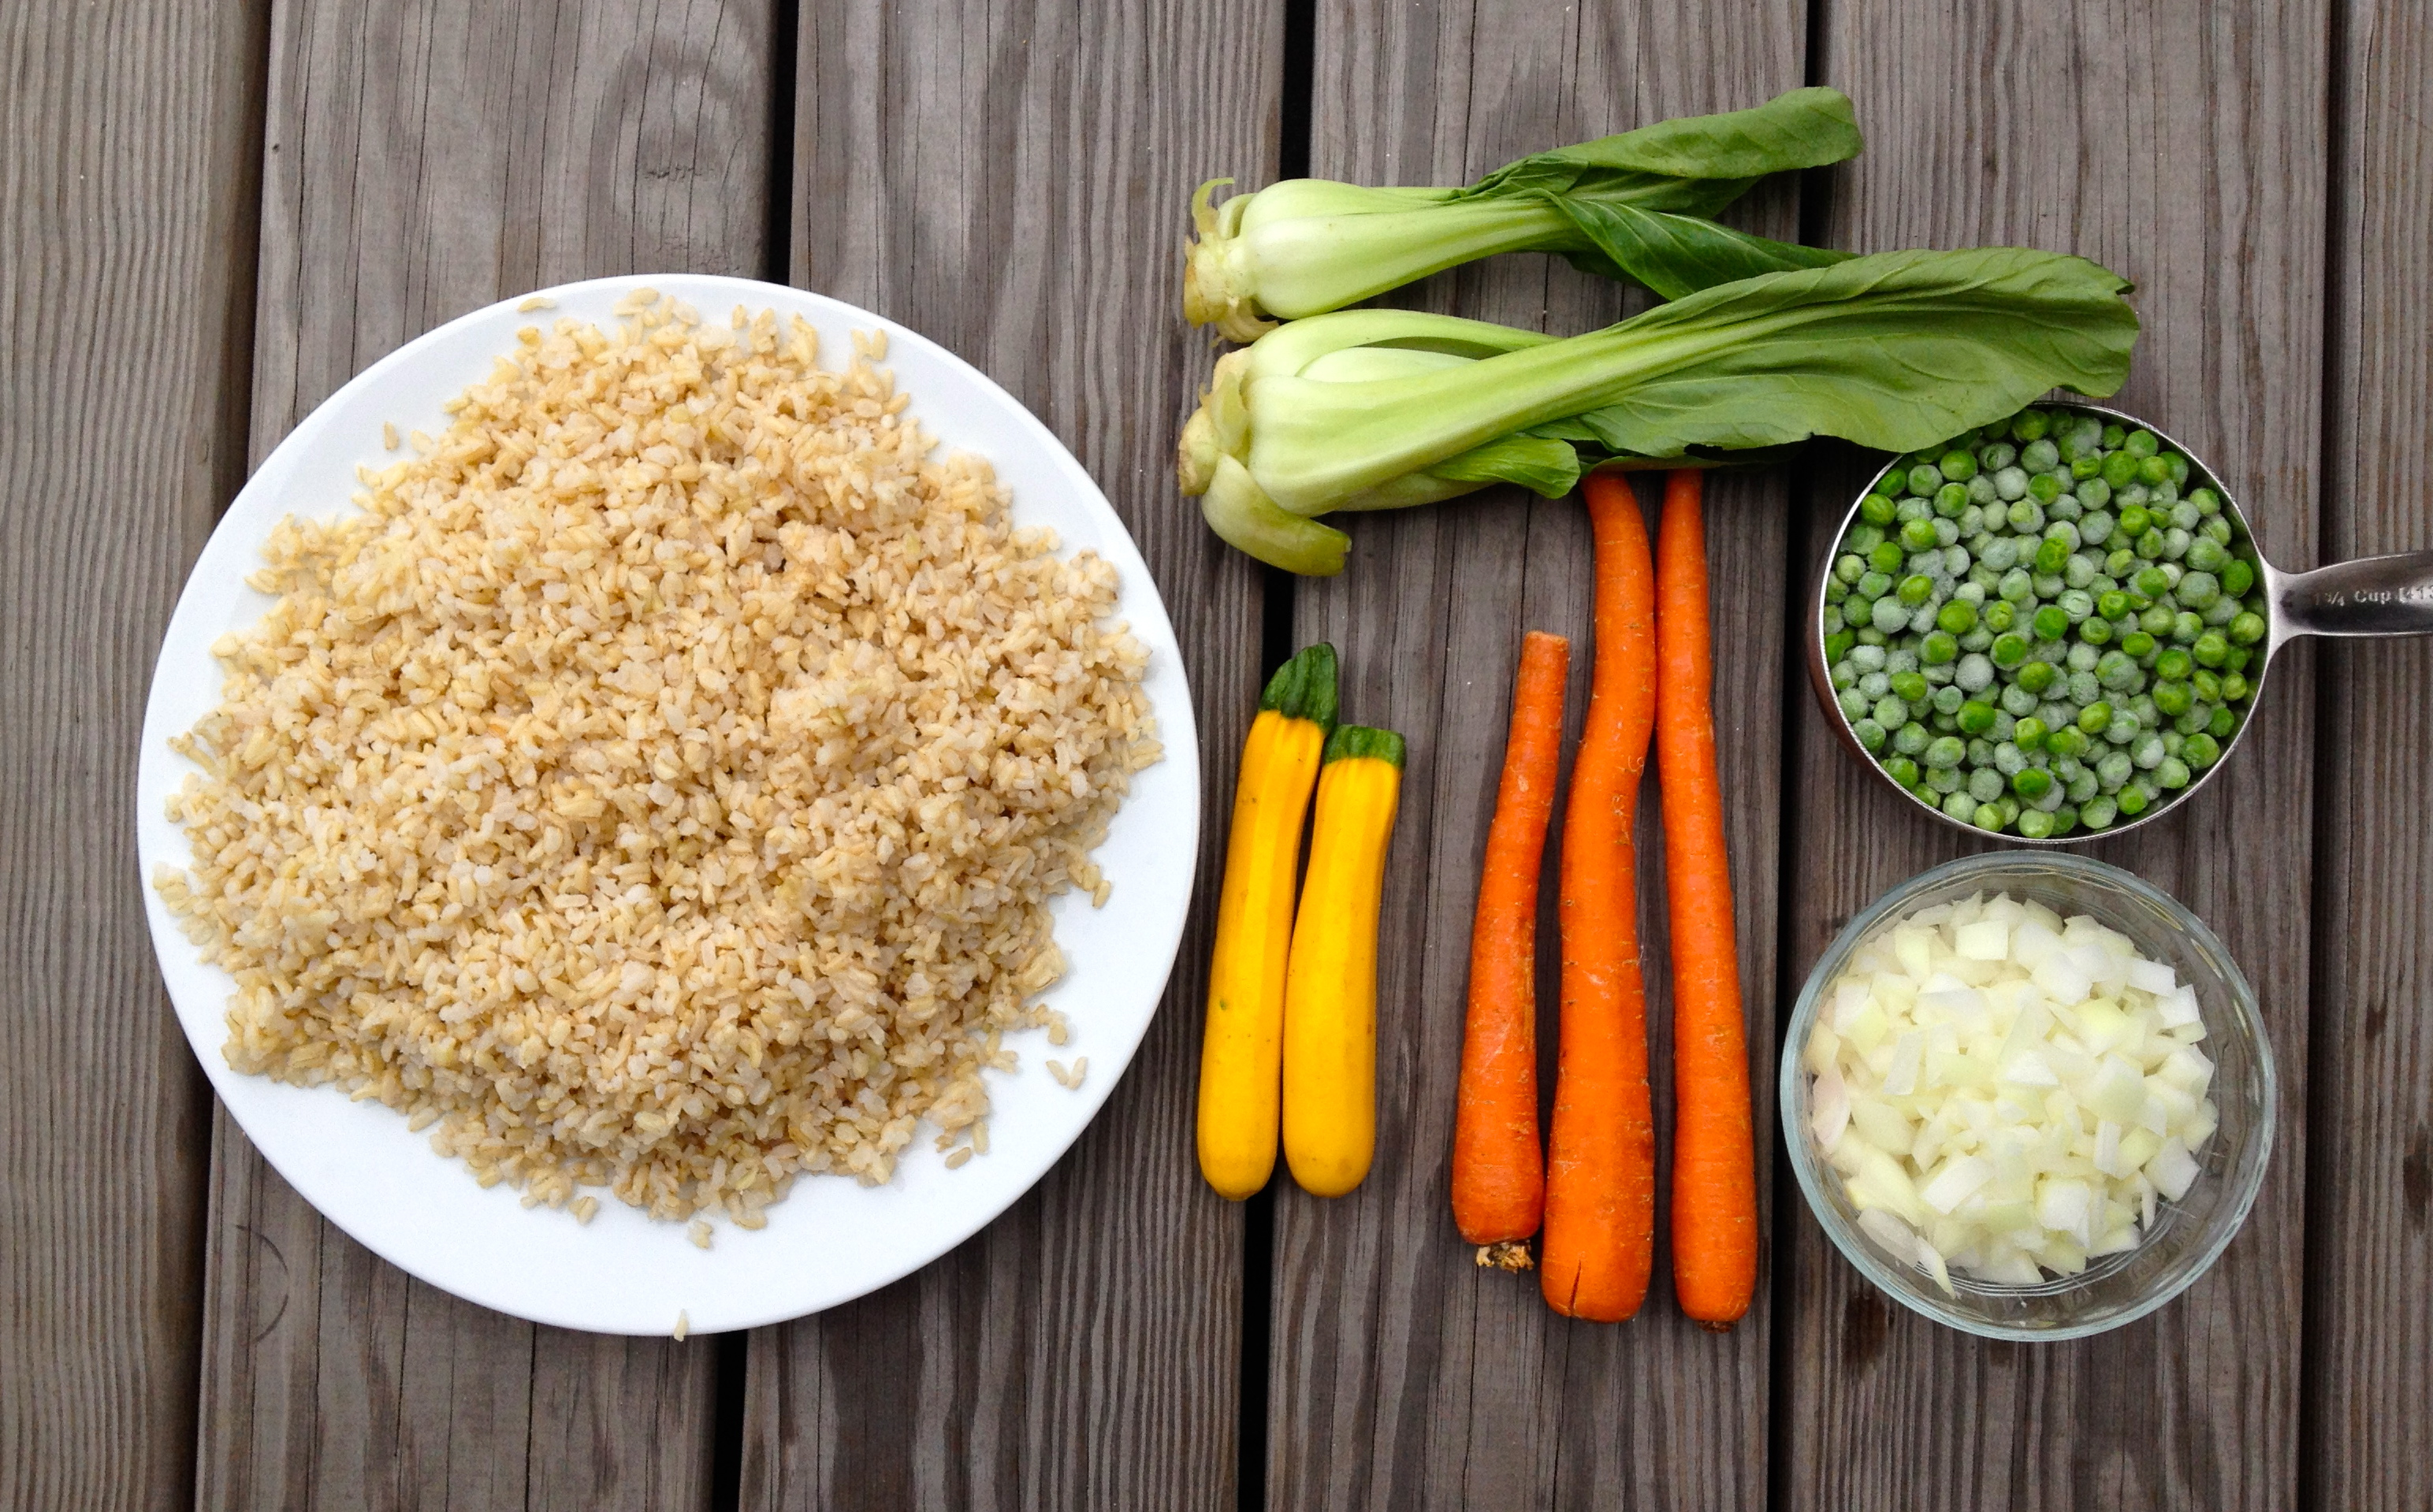 Most of the ingredients for Vegan Fried Rice